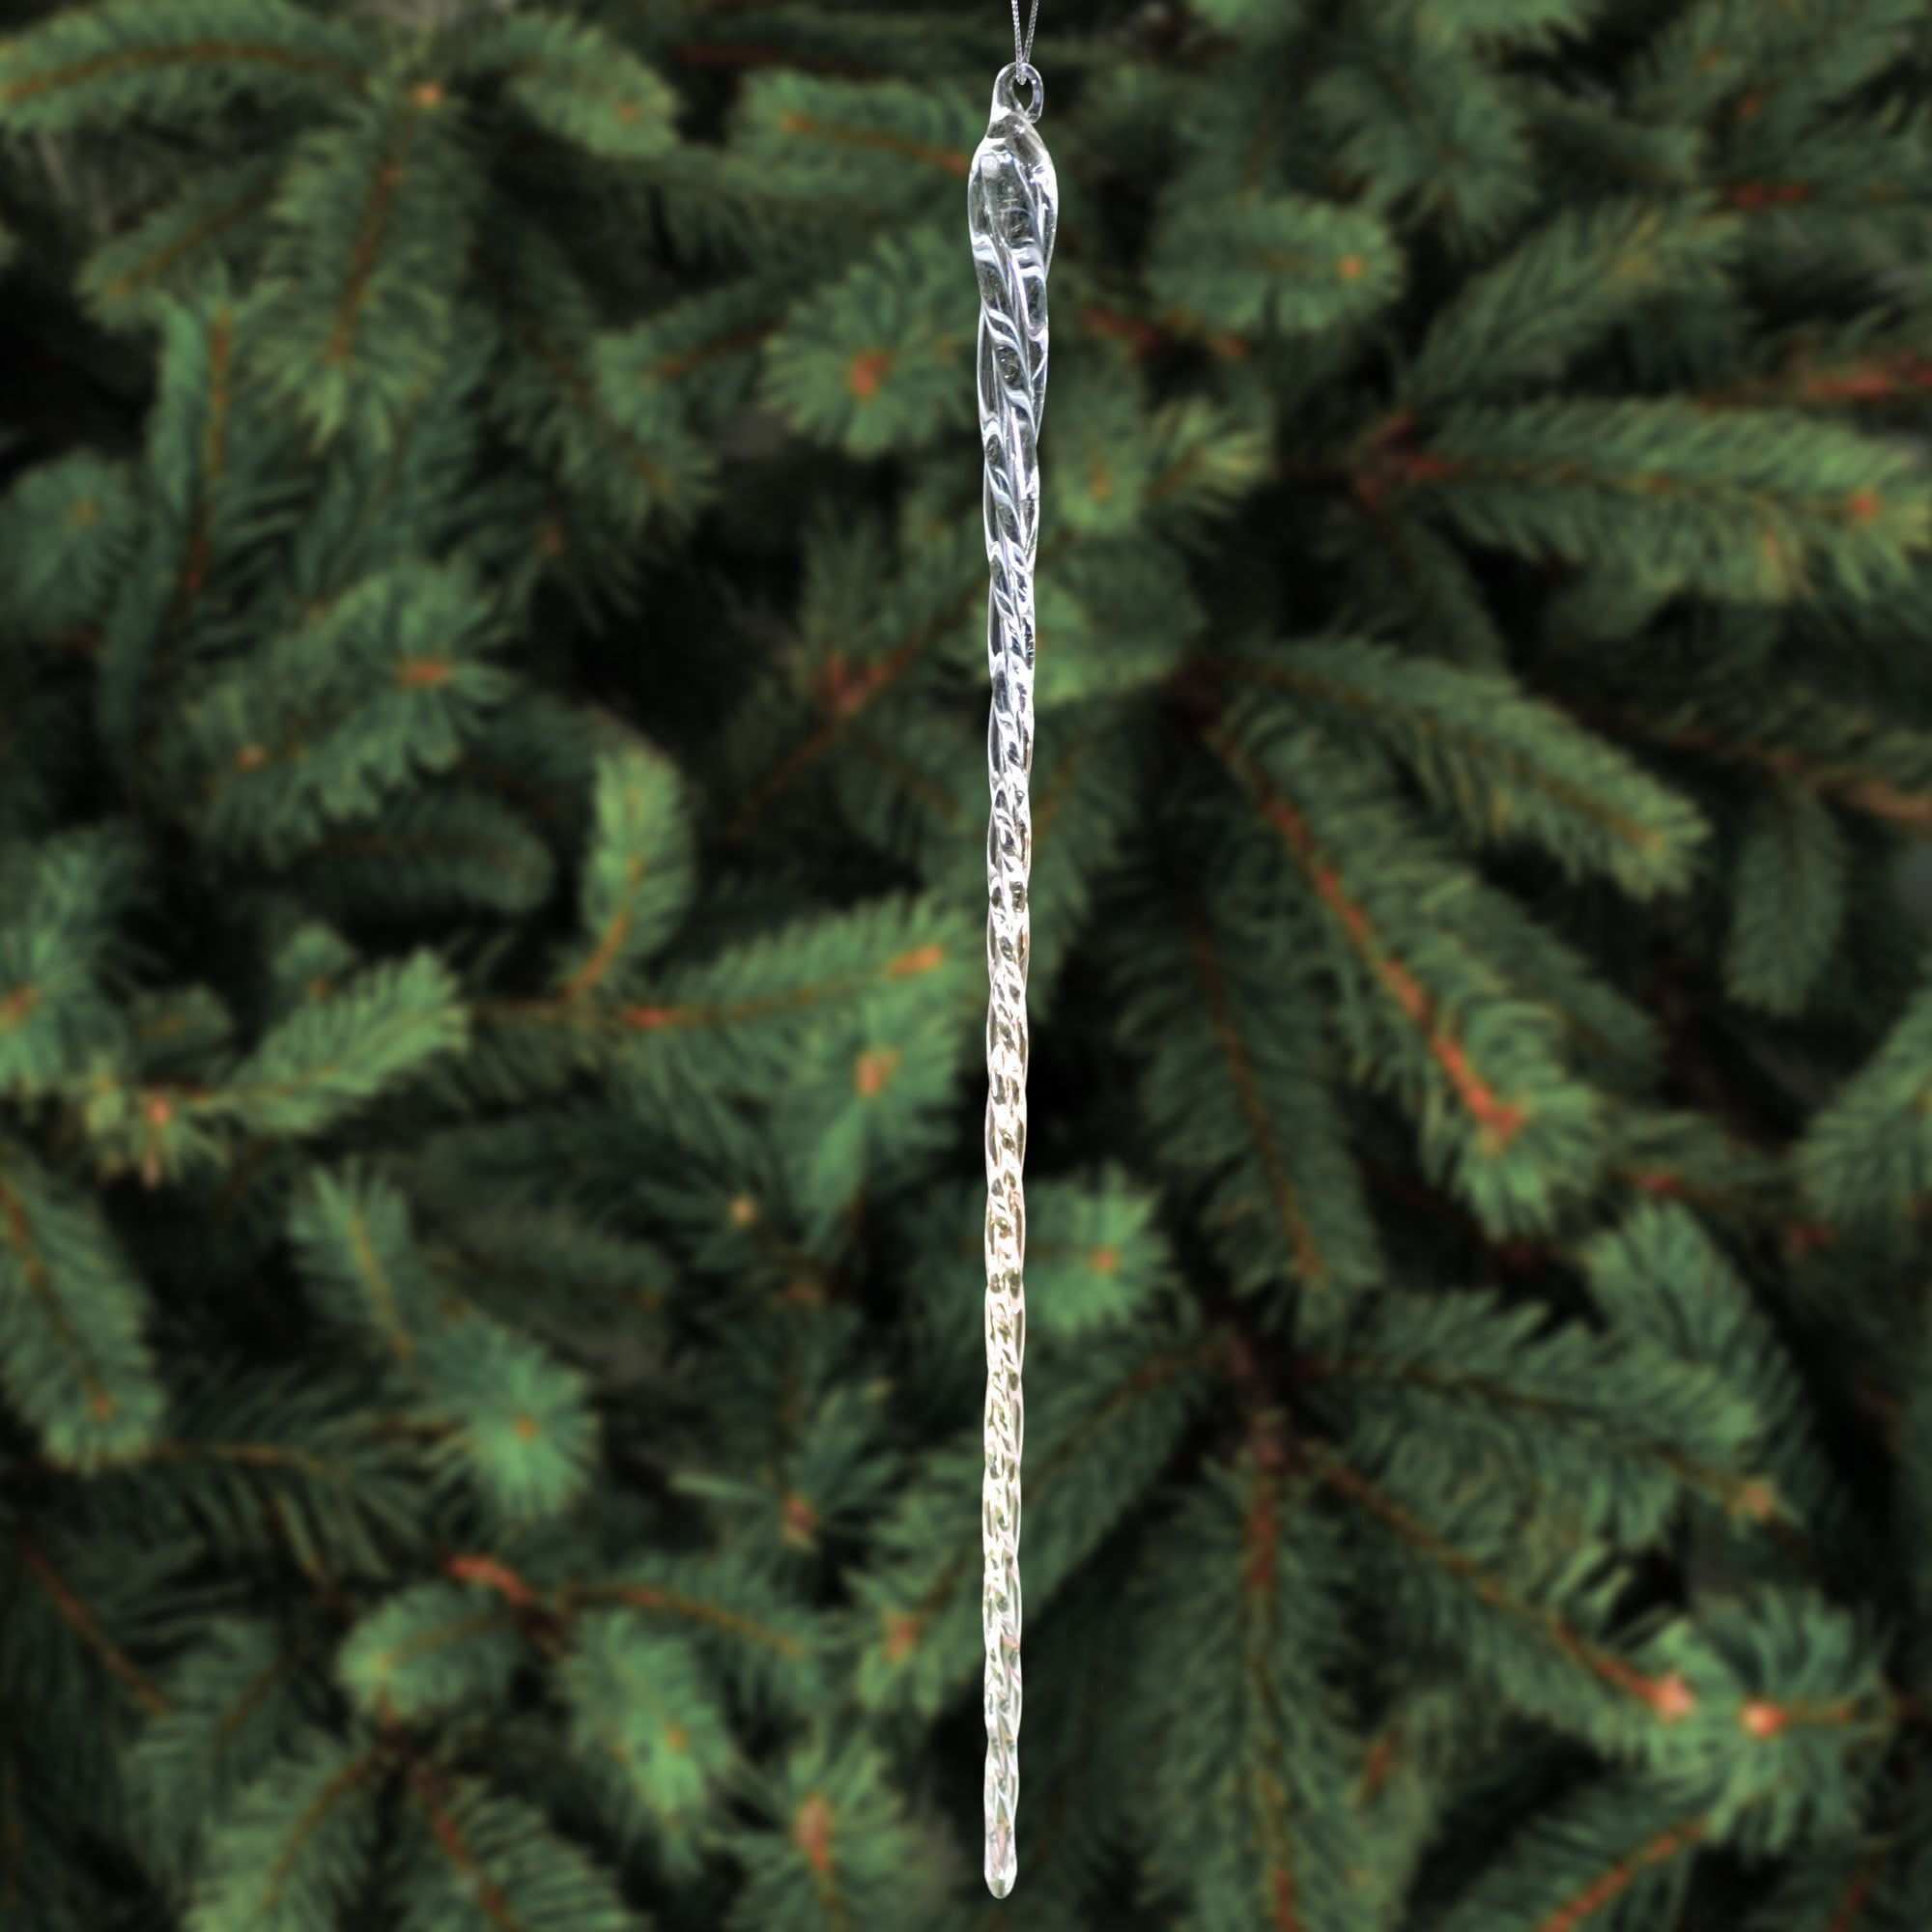 Icicle For Christmas Trees.14 Inch Clear Glass Icicle Hanging Christmas Tree Ornaments